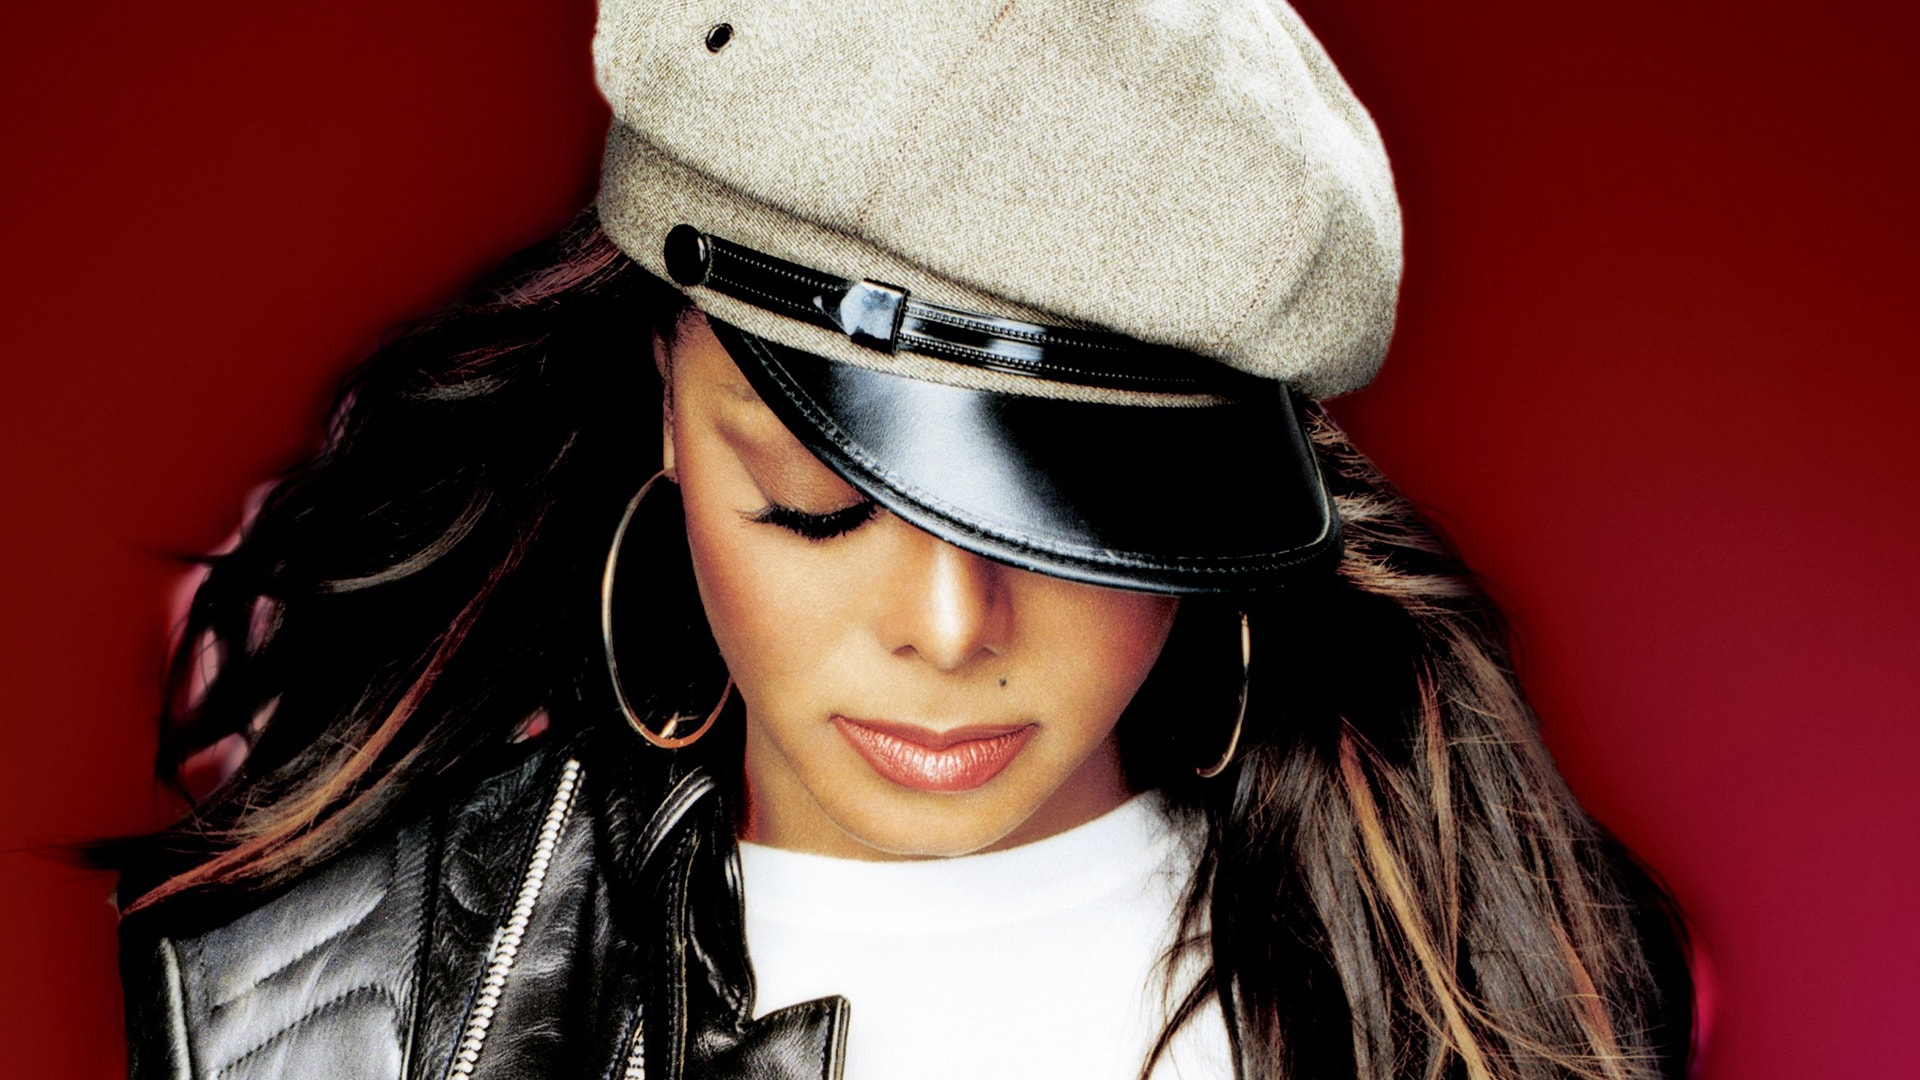 Janet Damita Jo Jackson born May 16 1966 is an American singer songwriter actress and dancer A prominent figure in popular culture she is known for sonically